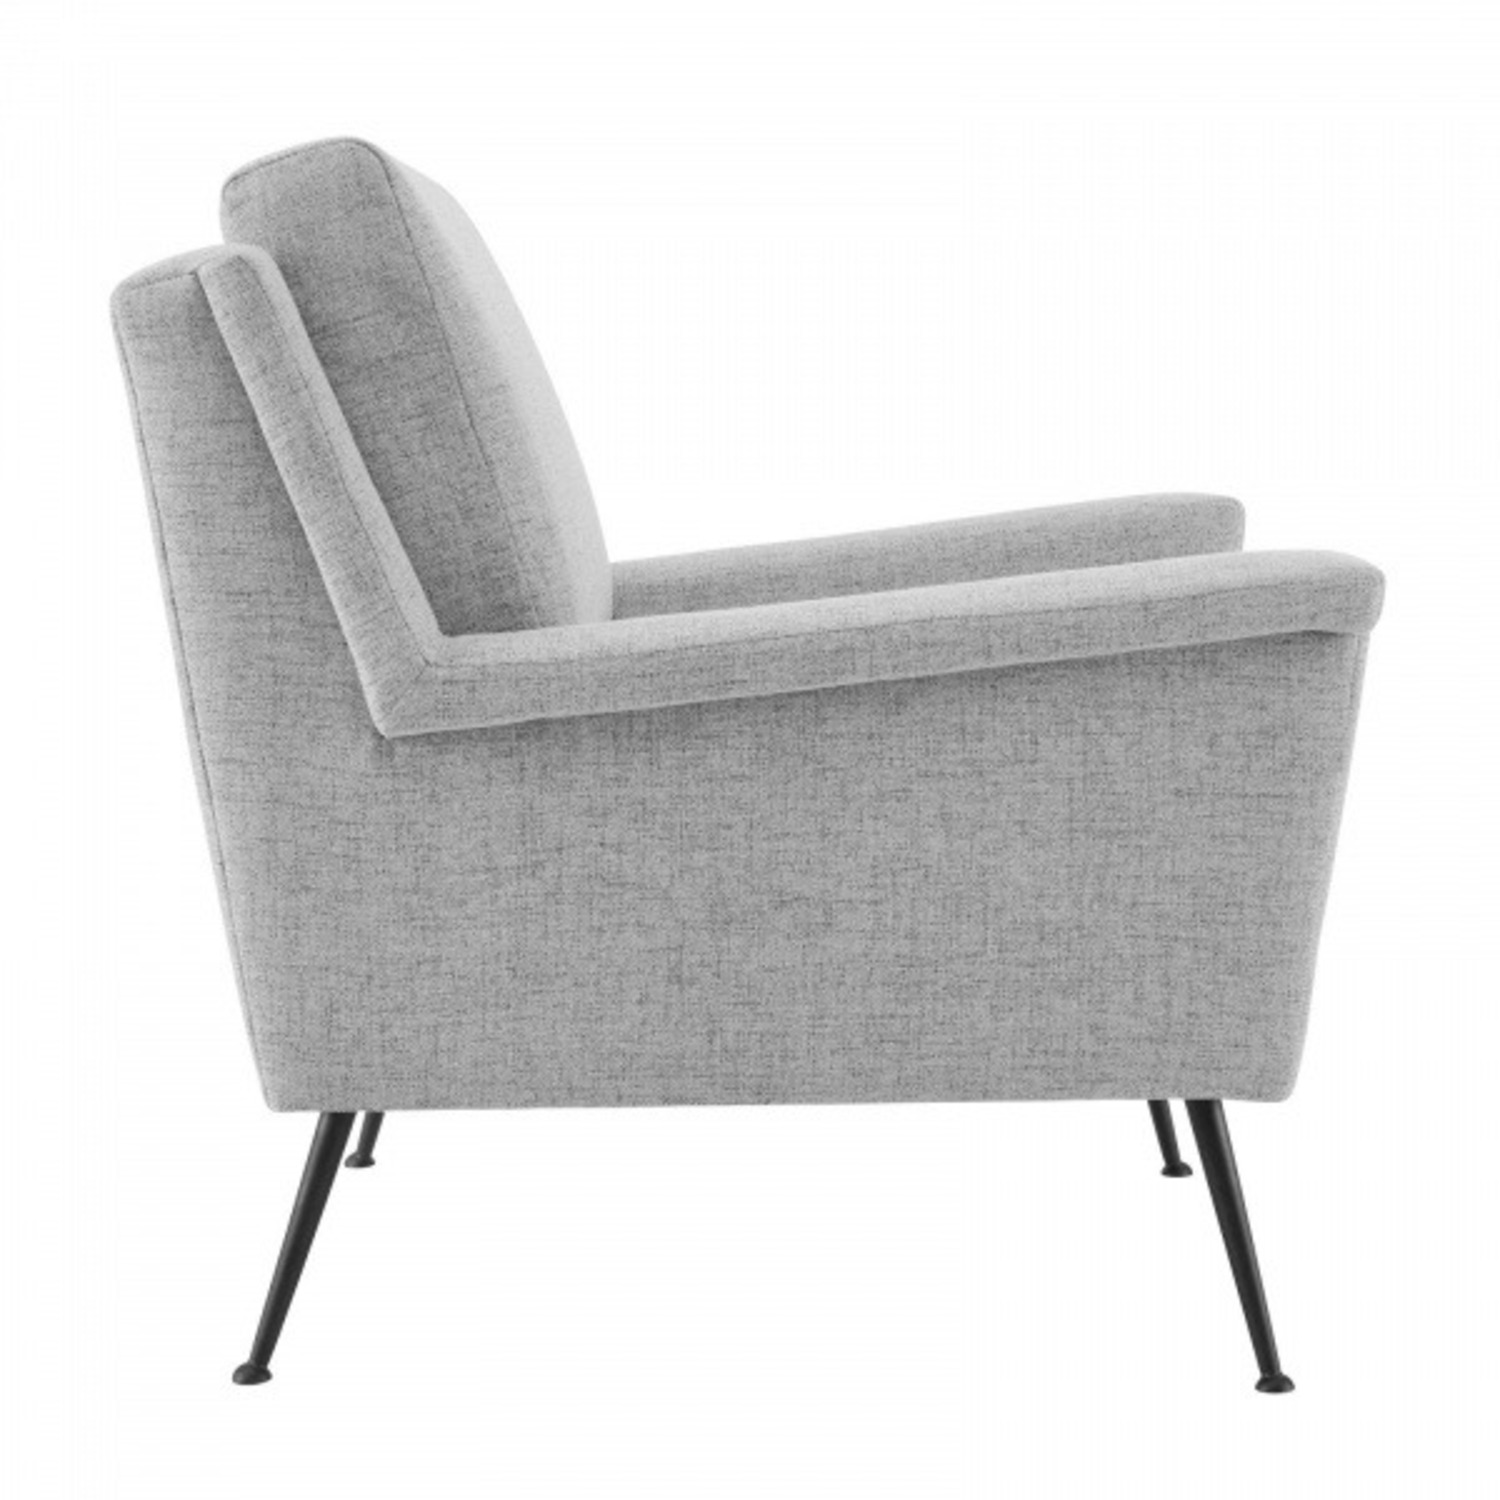 Modern Accent Armchair In Light Gray Fabric - image-3